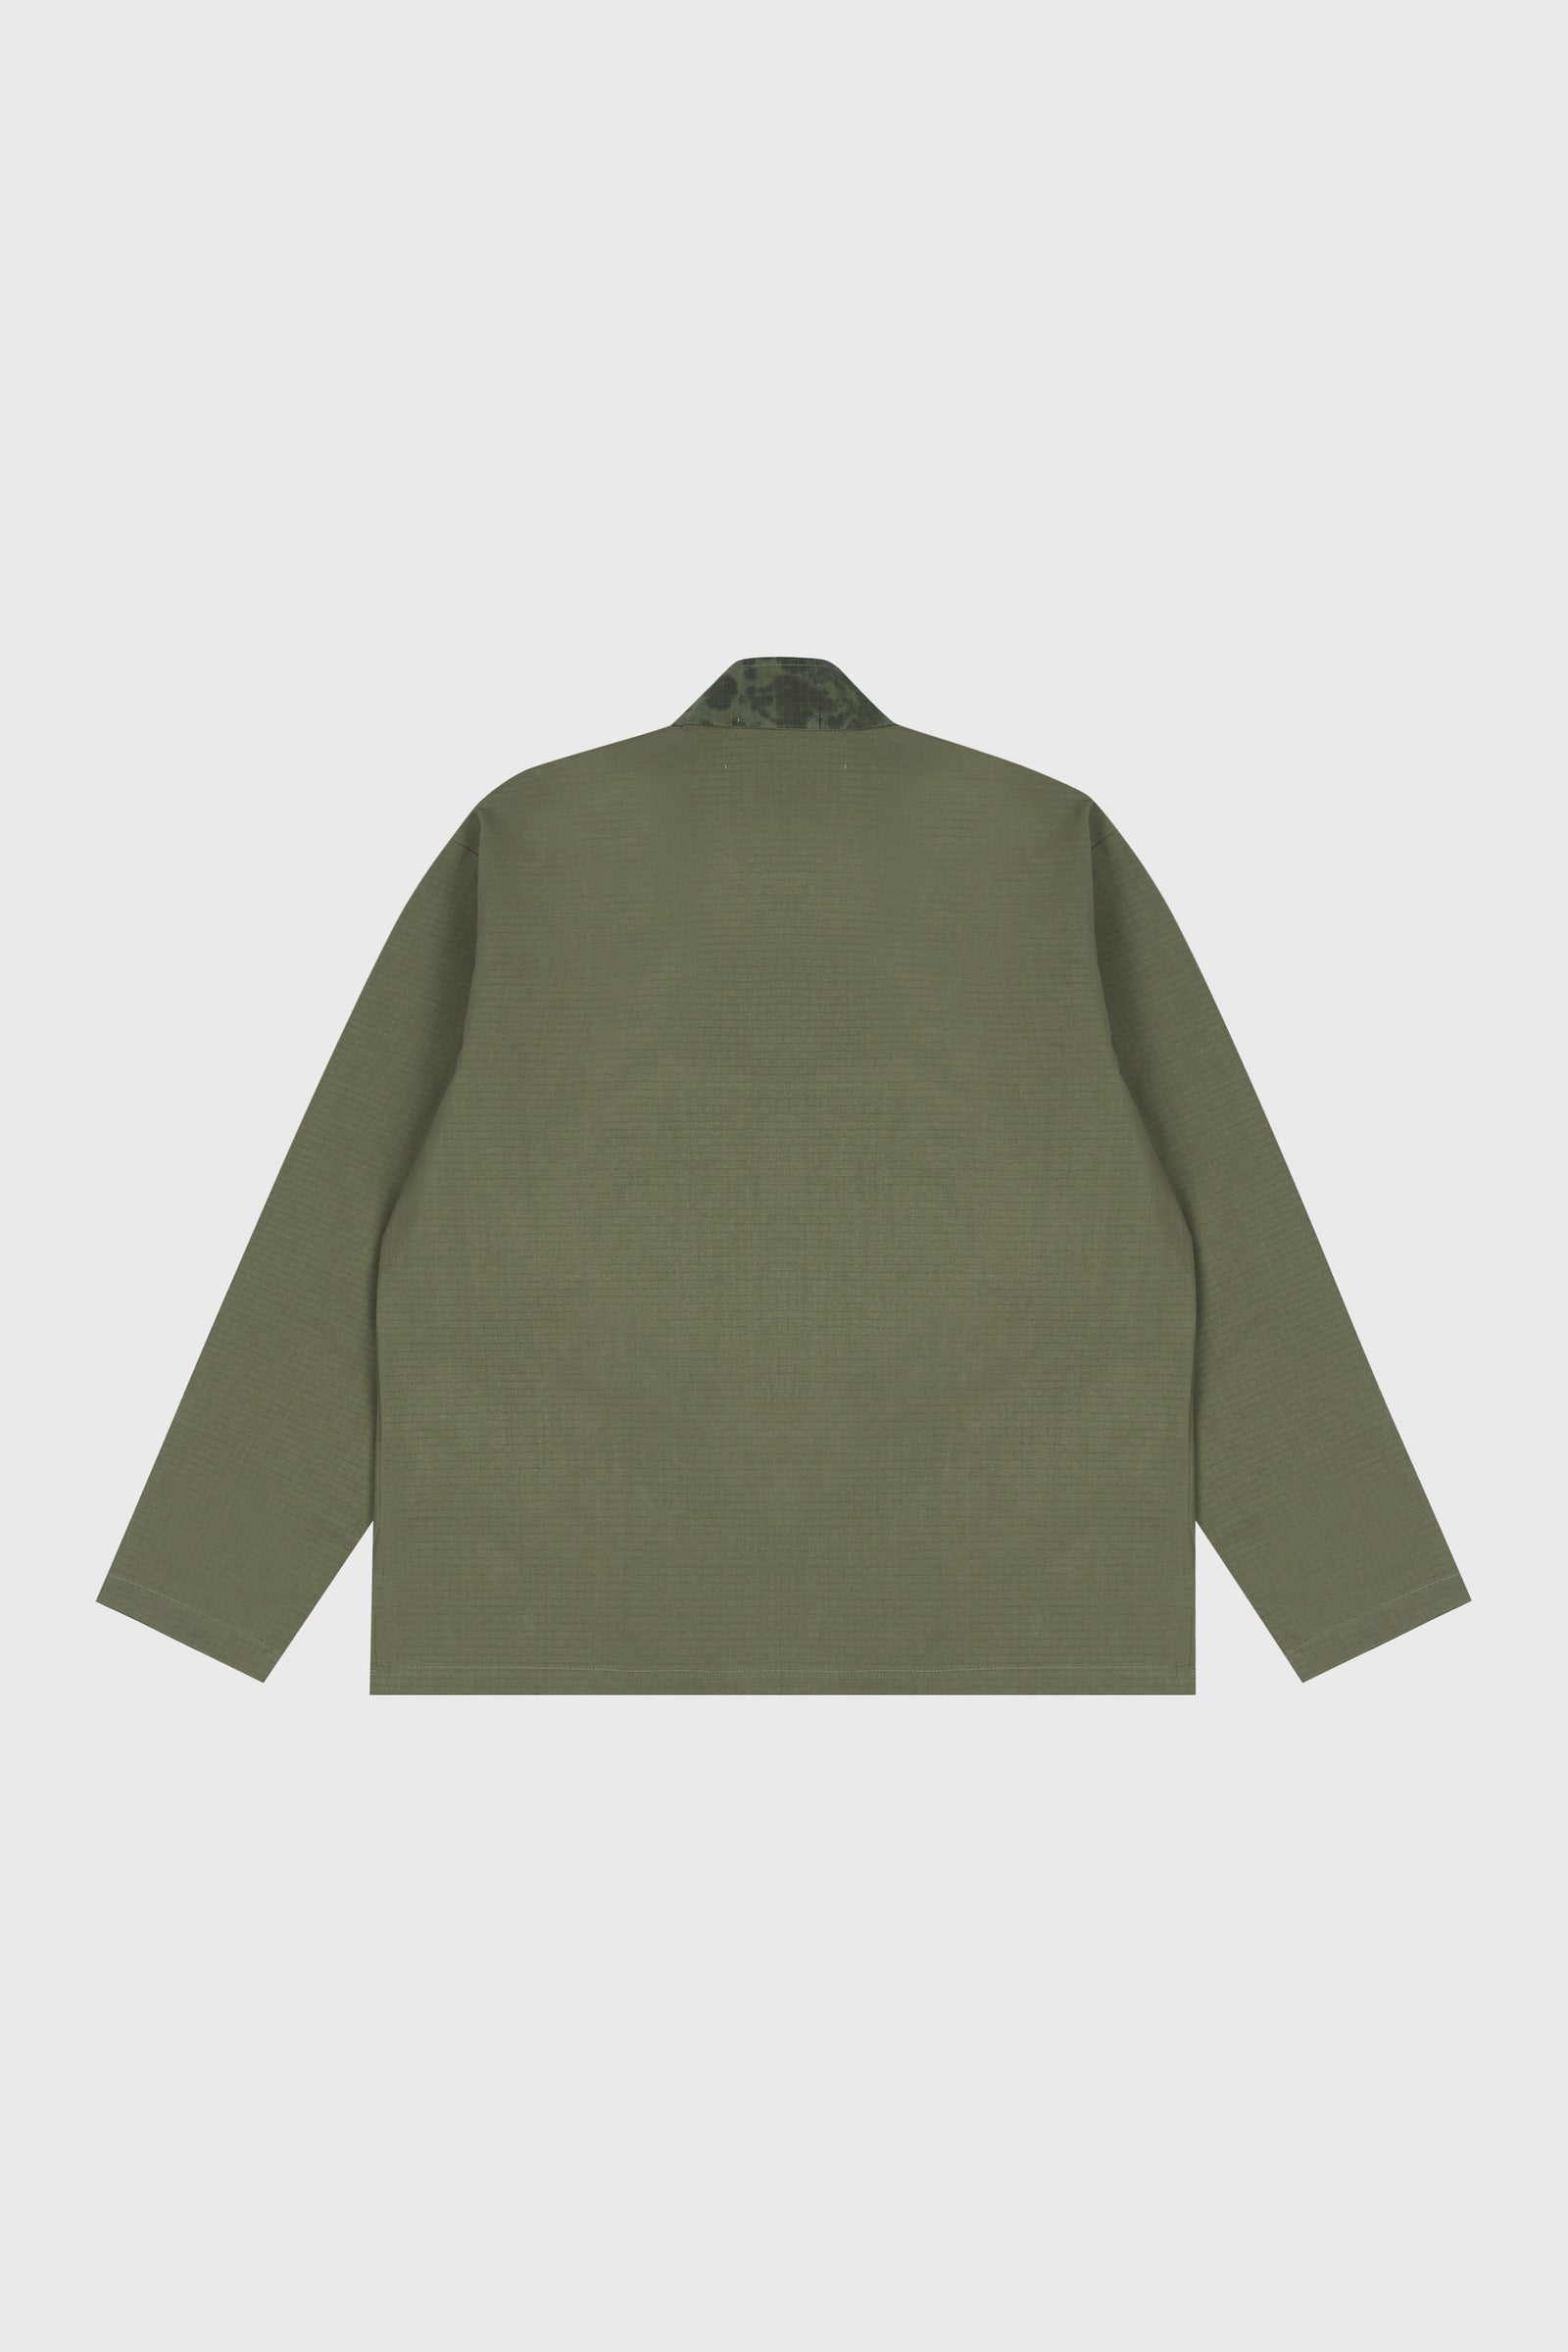 Photo of Army Green Double Layered Jeogori Bomber Jacket, number 9